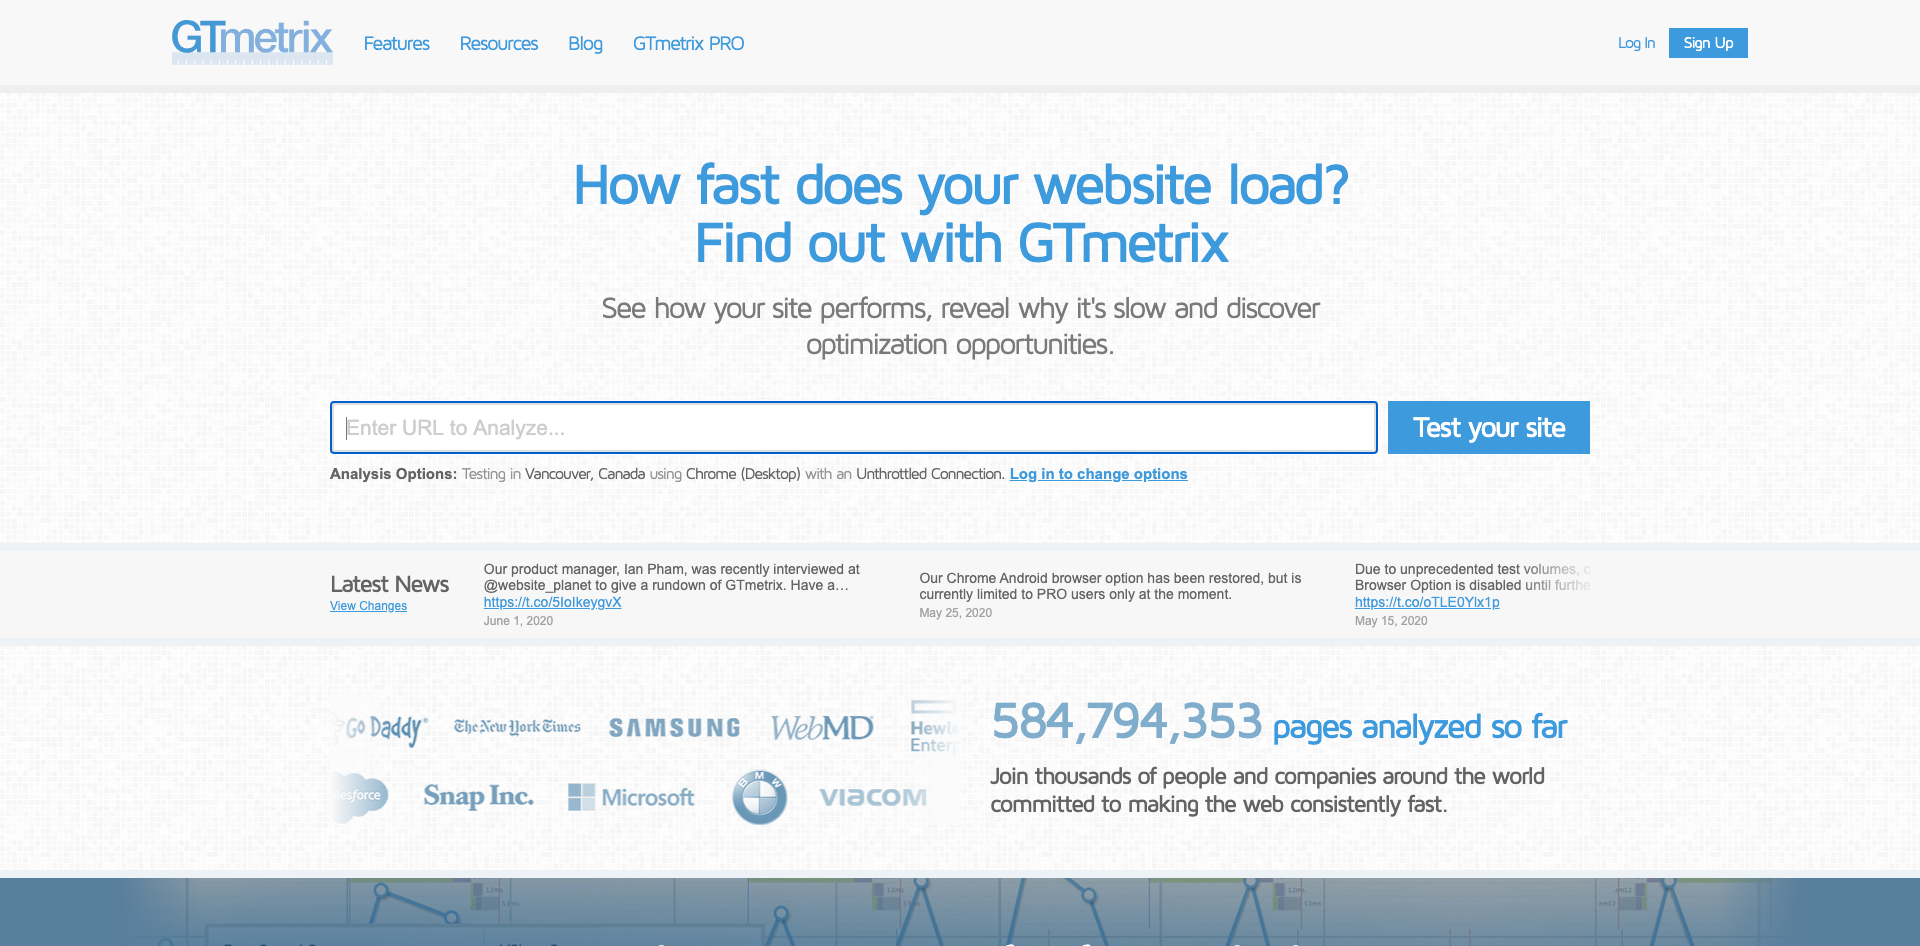 How fast does your website load?